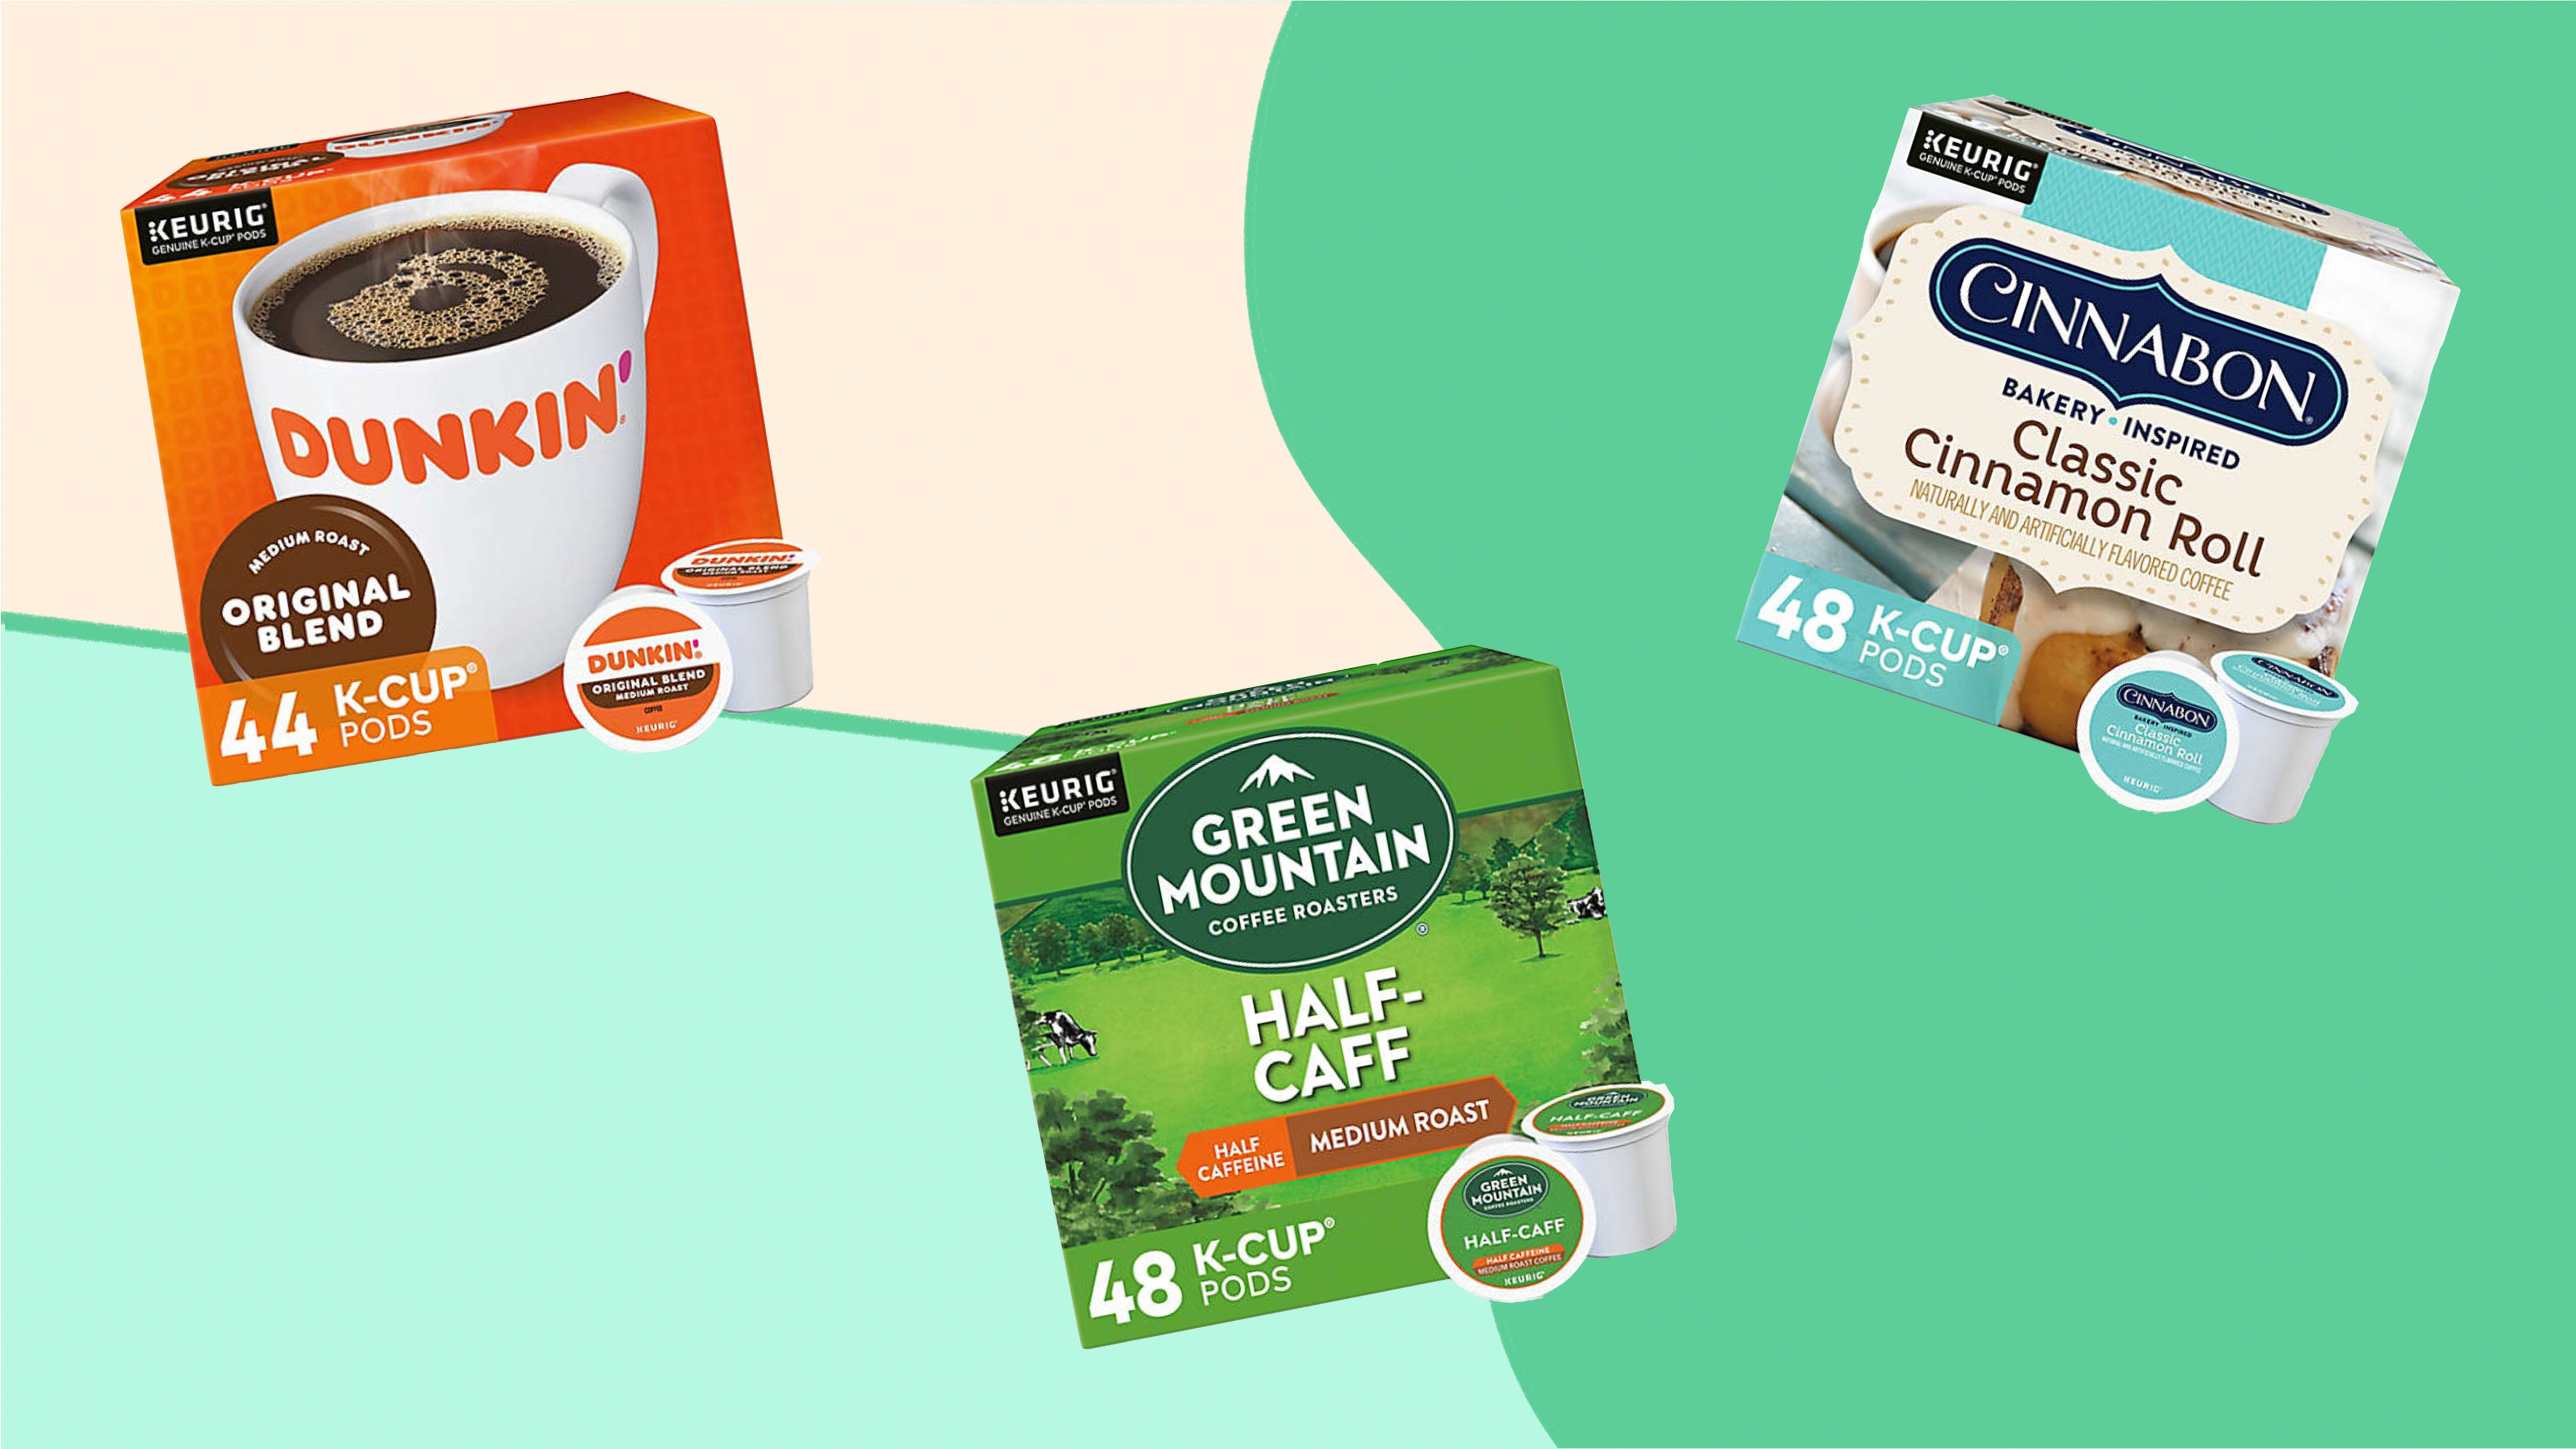 Get K-Cups for a steal at Bed, Bath & Beyond right now